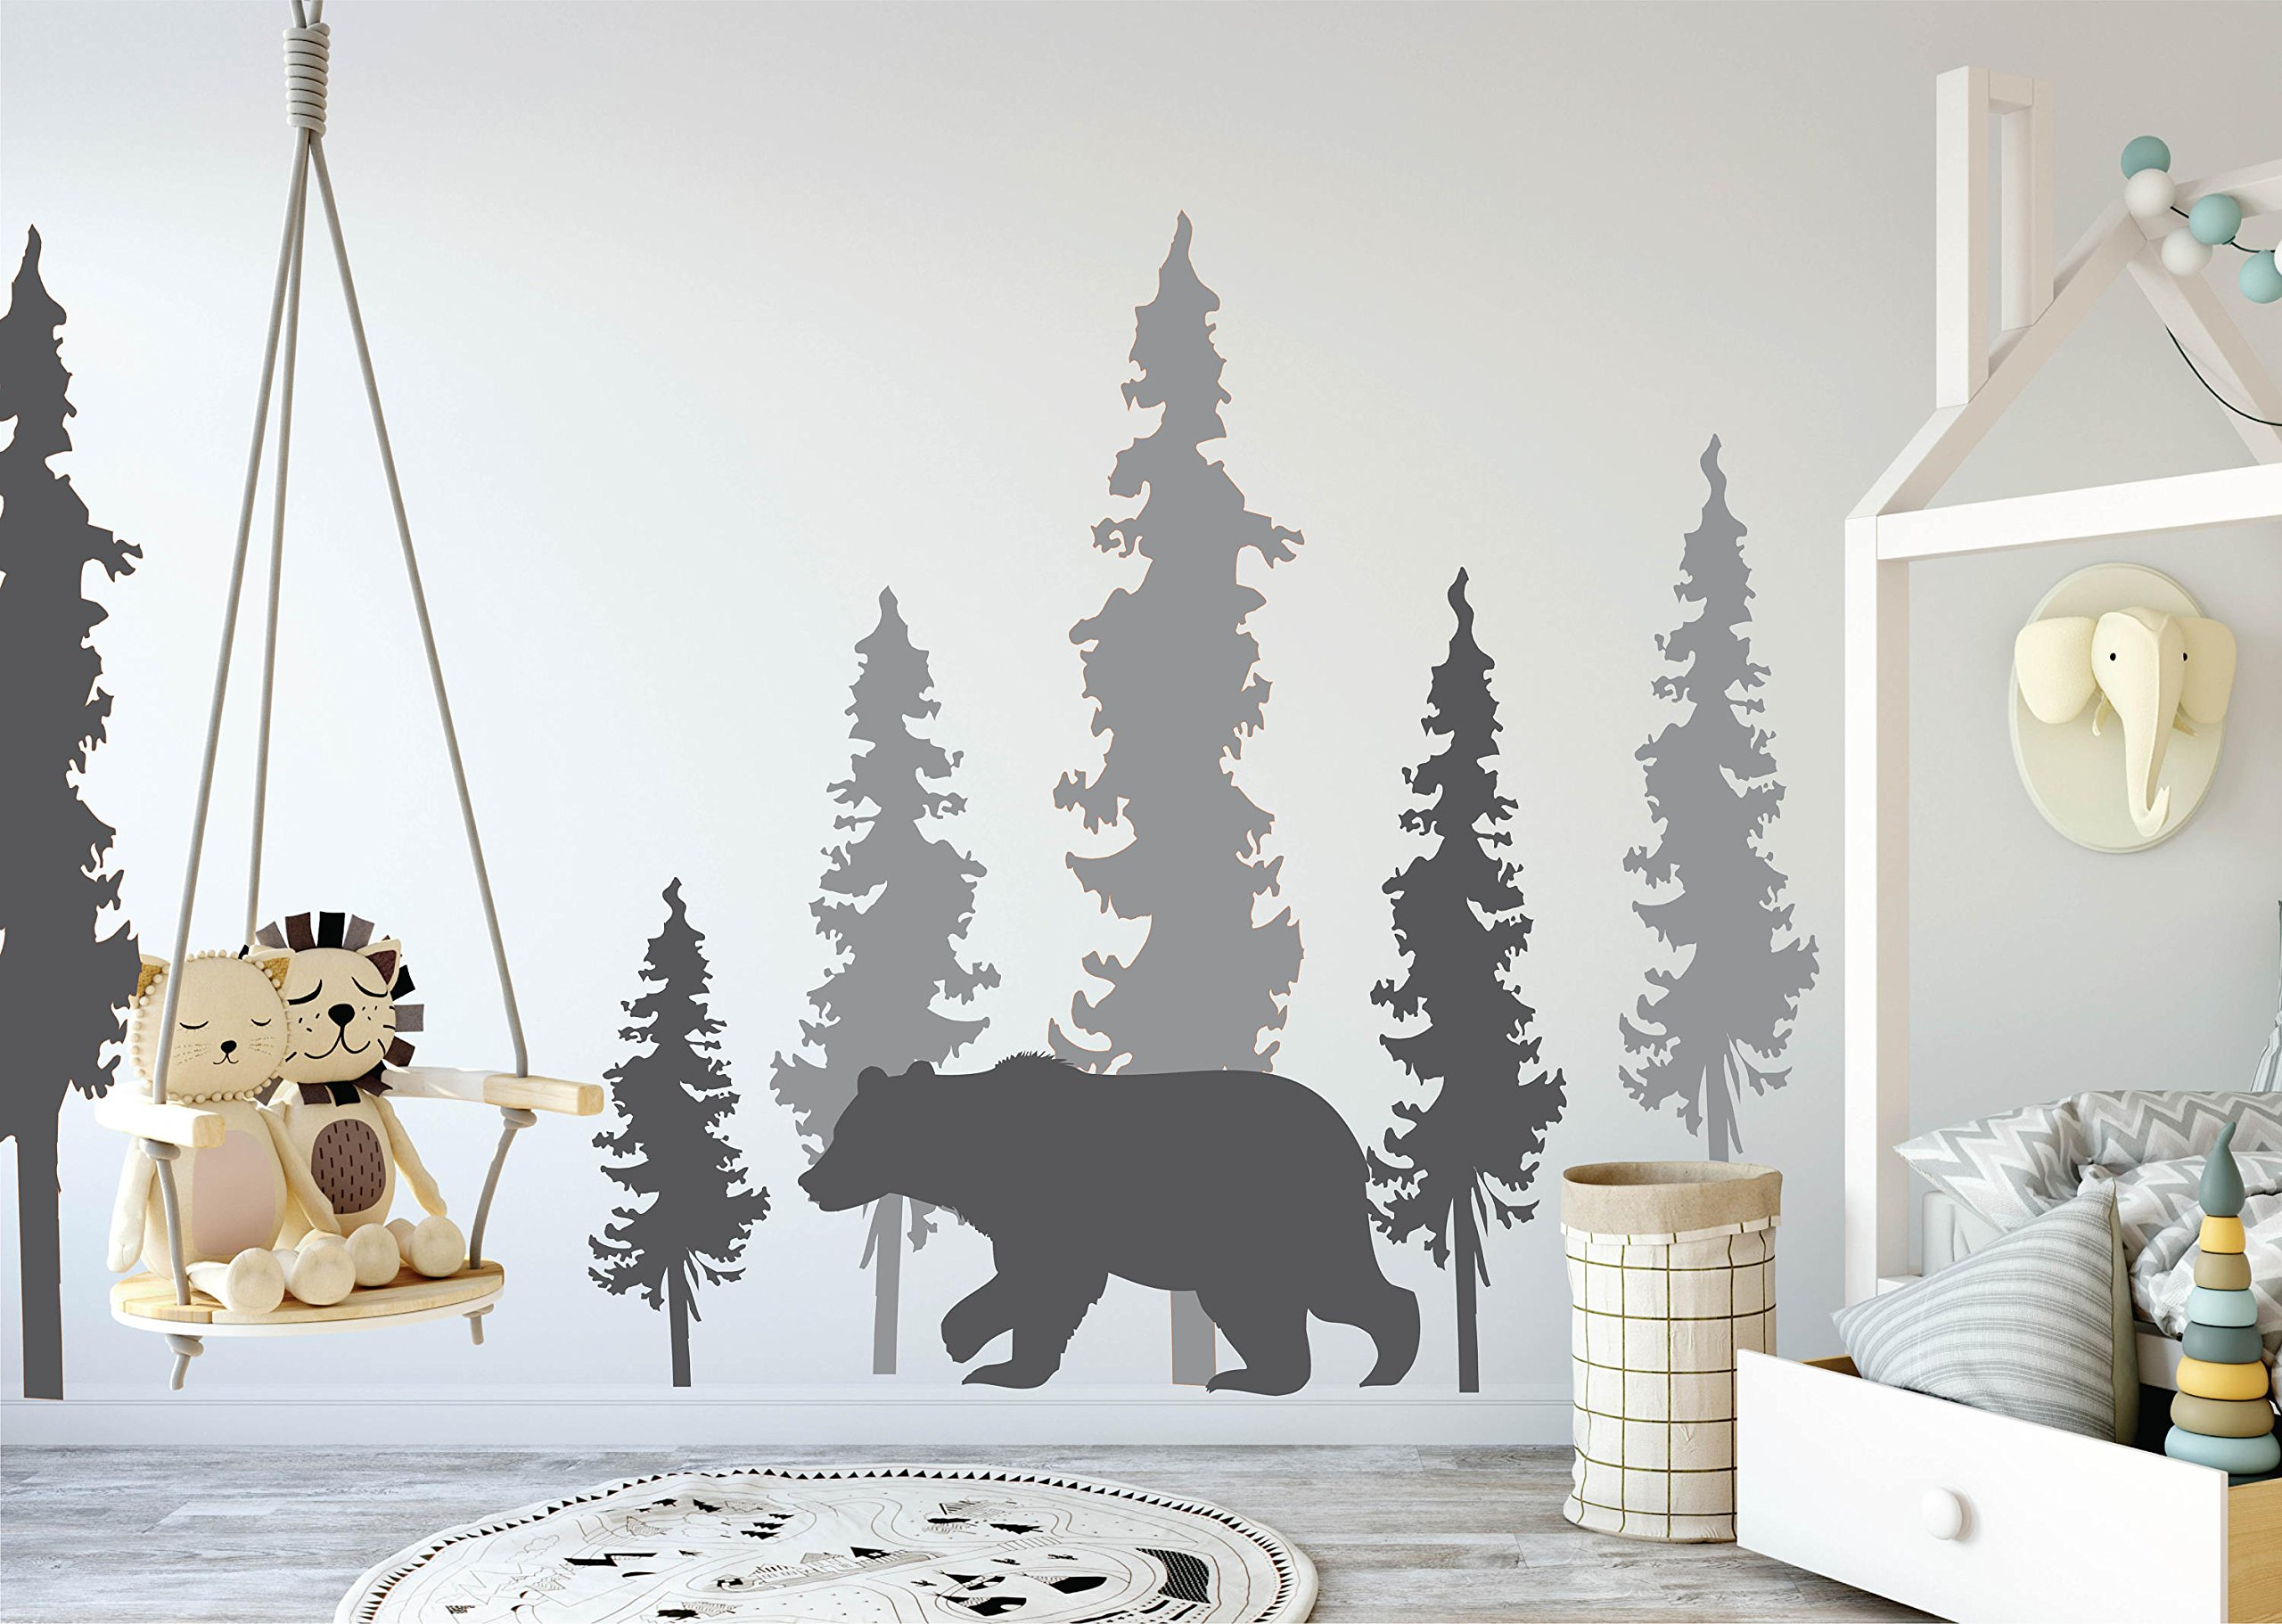 N.SunForest Woodland Wall Decals Pine Trees Bear Decal Woodland Decals Woodland Decor Pine Tree Decals Bear and Trees Decal Woodland Mural